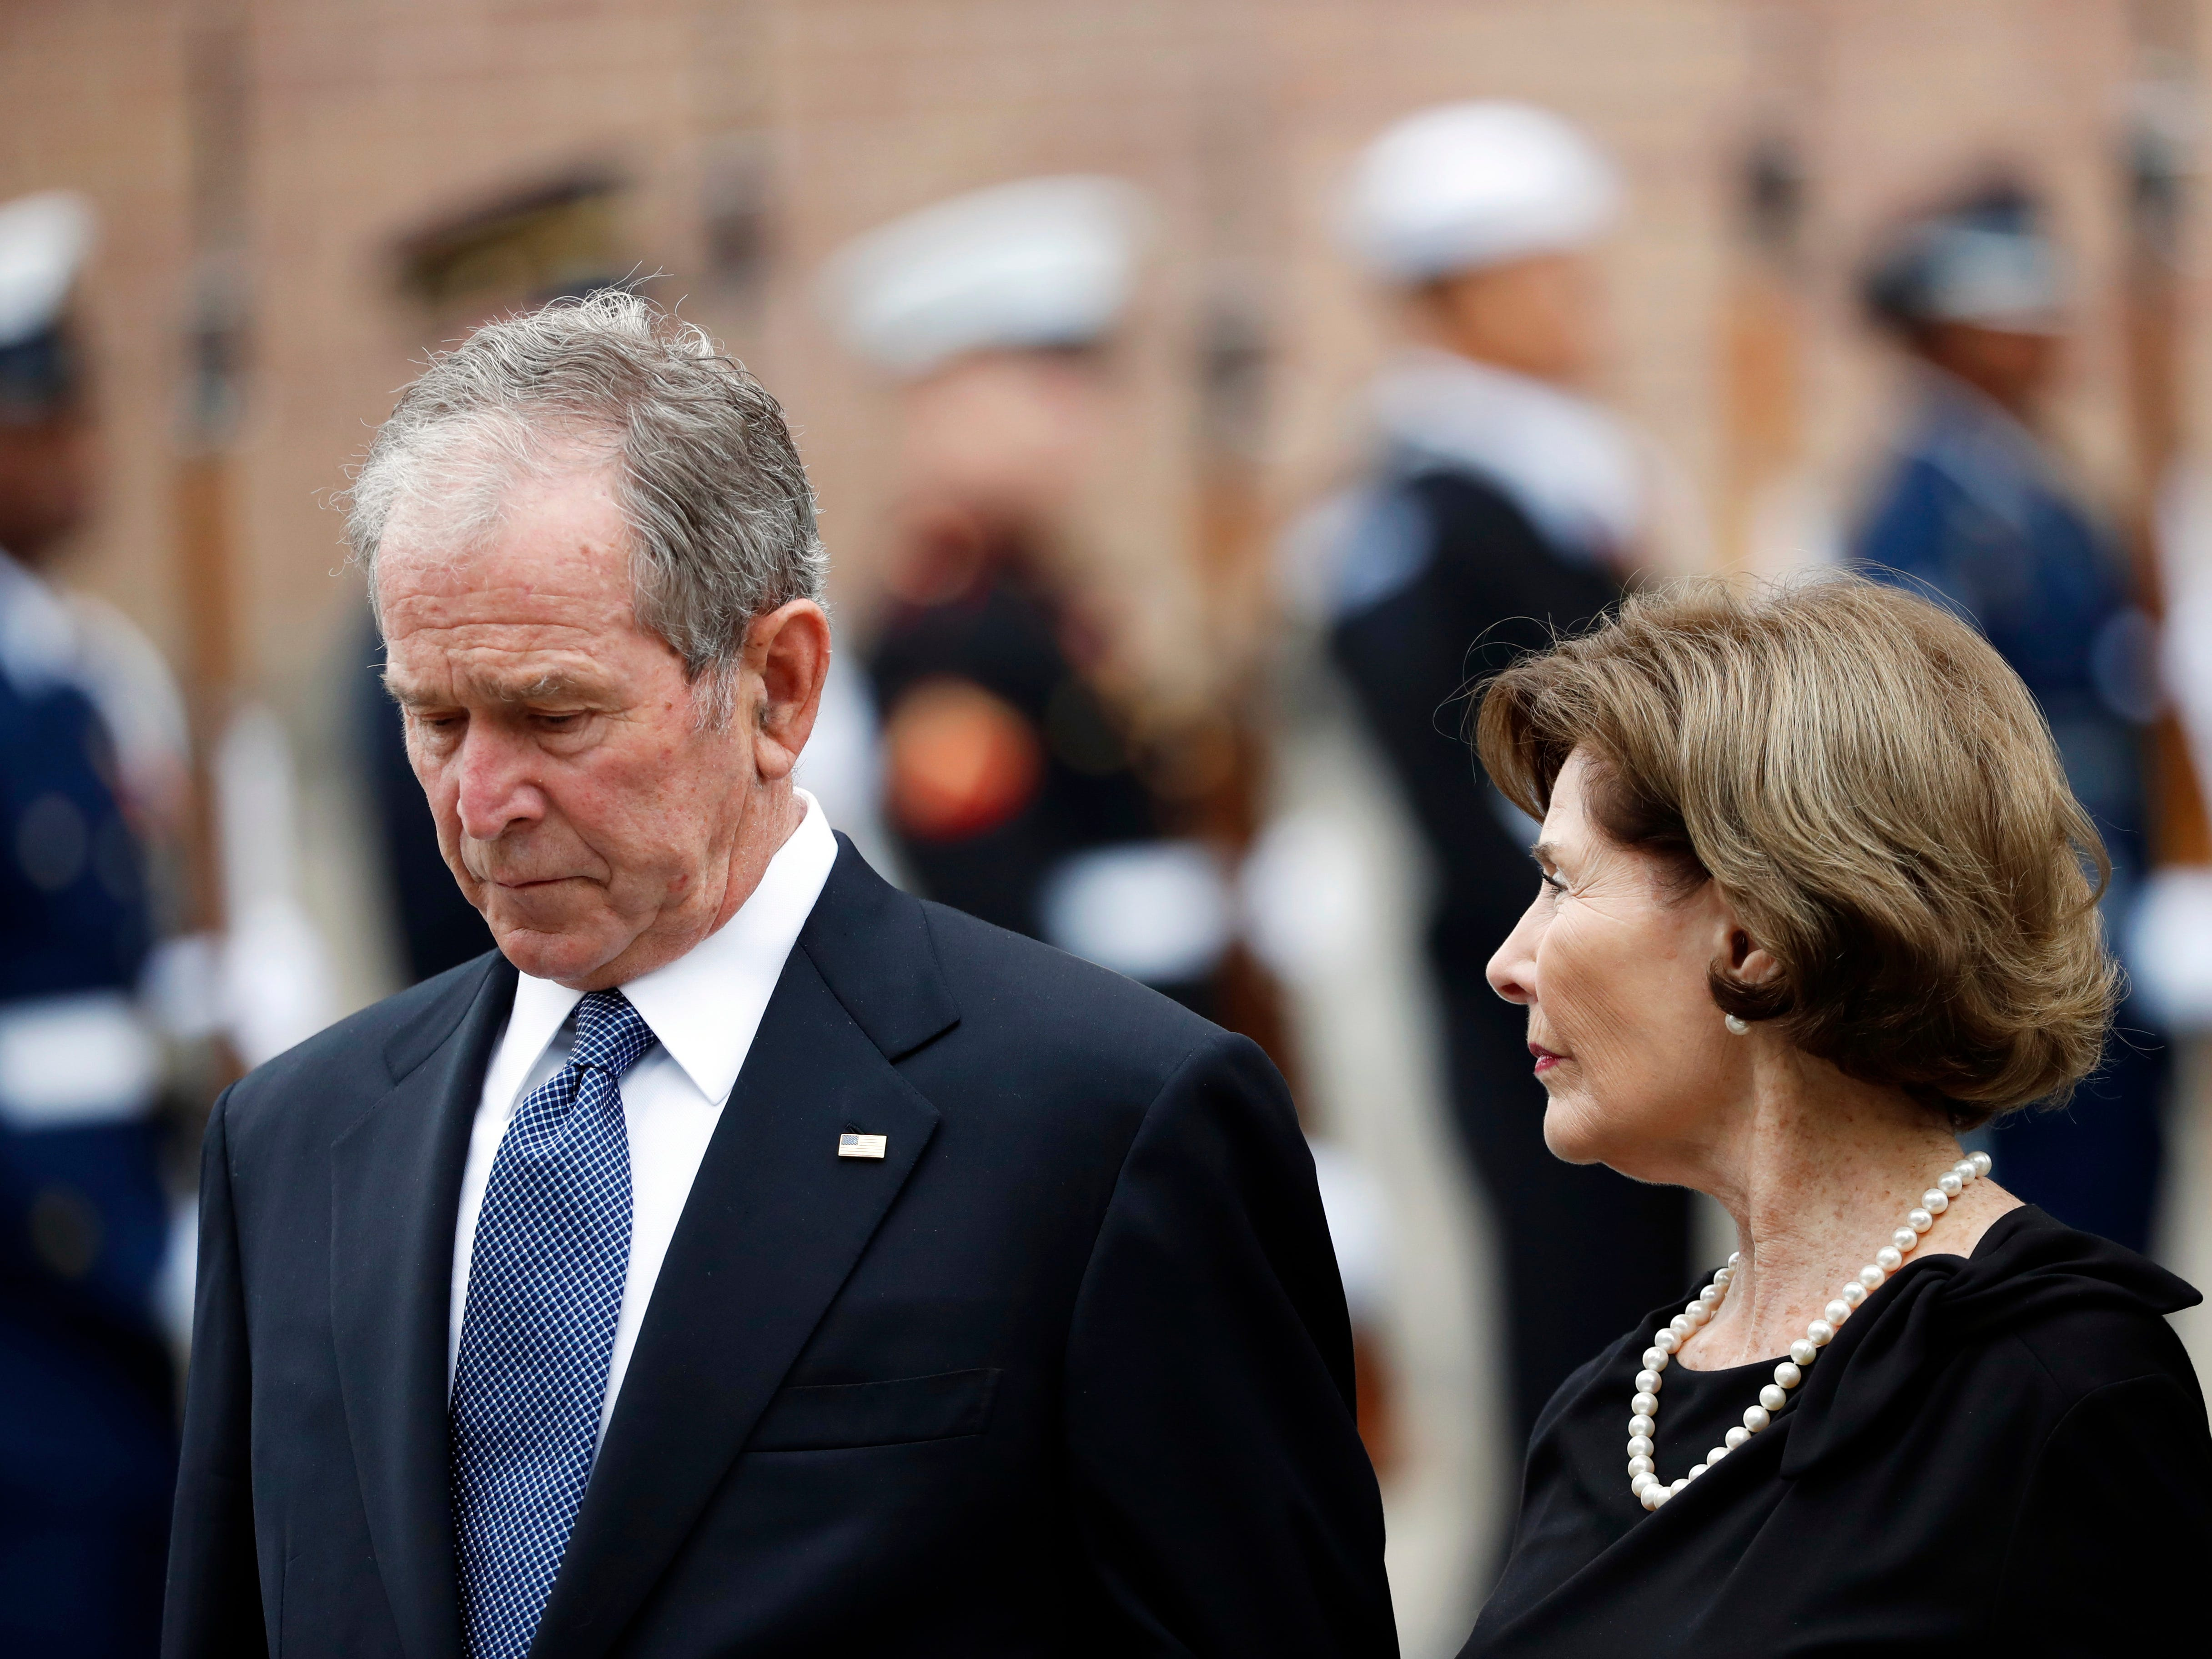 Former President George W. Bush and his wife, Laura Bush, leave St. Martin's Episcopal Church in Houston after the funeral for his father, former President George H.W. Bush, on Thursday, Dec. 6, 2018.